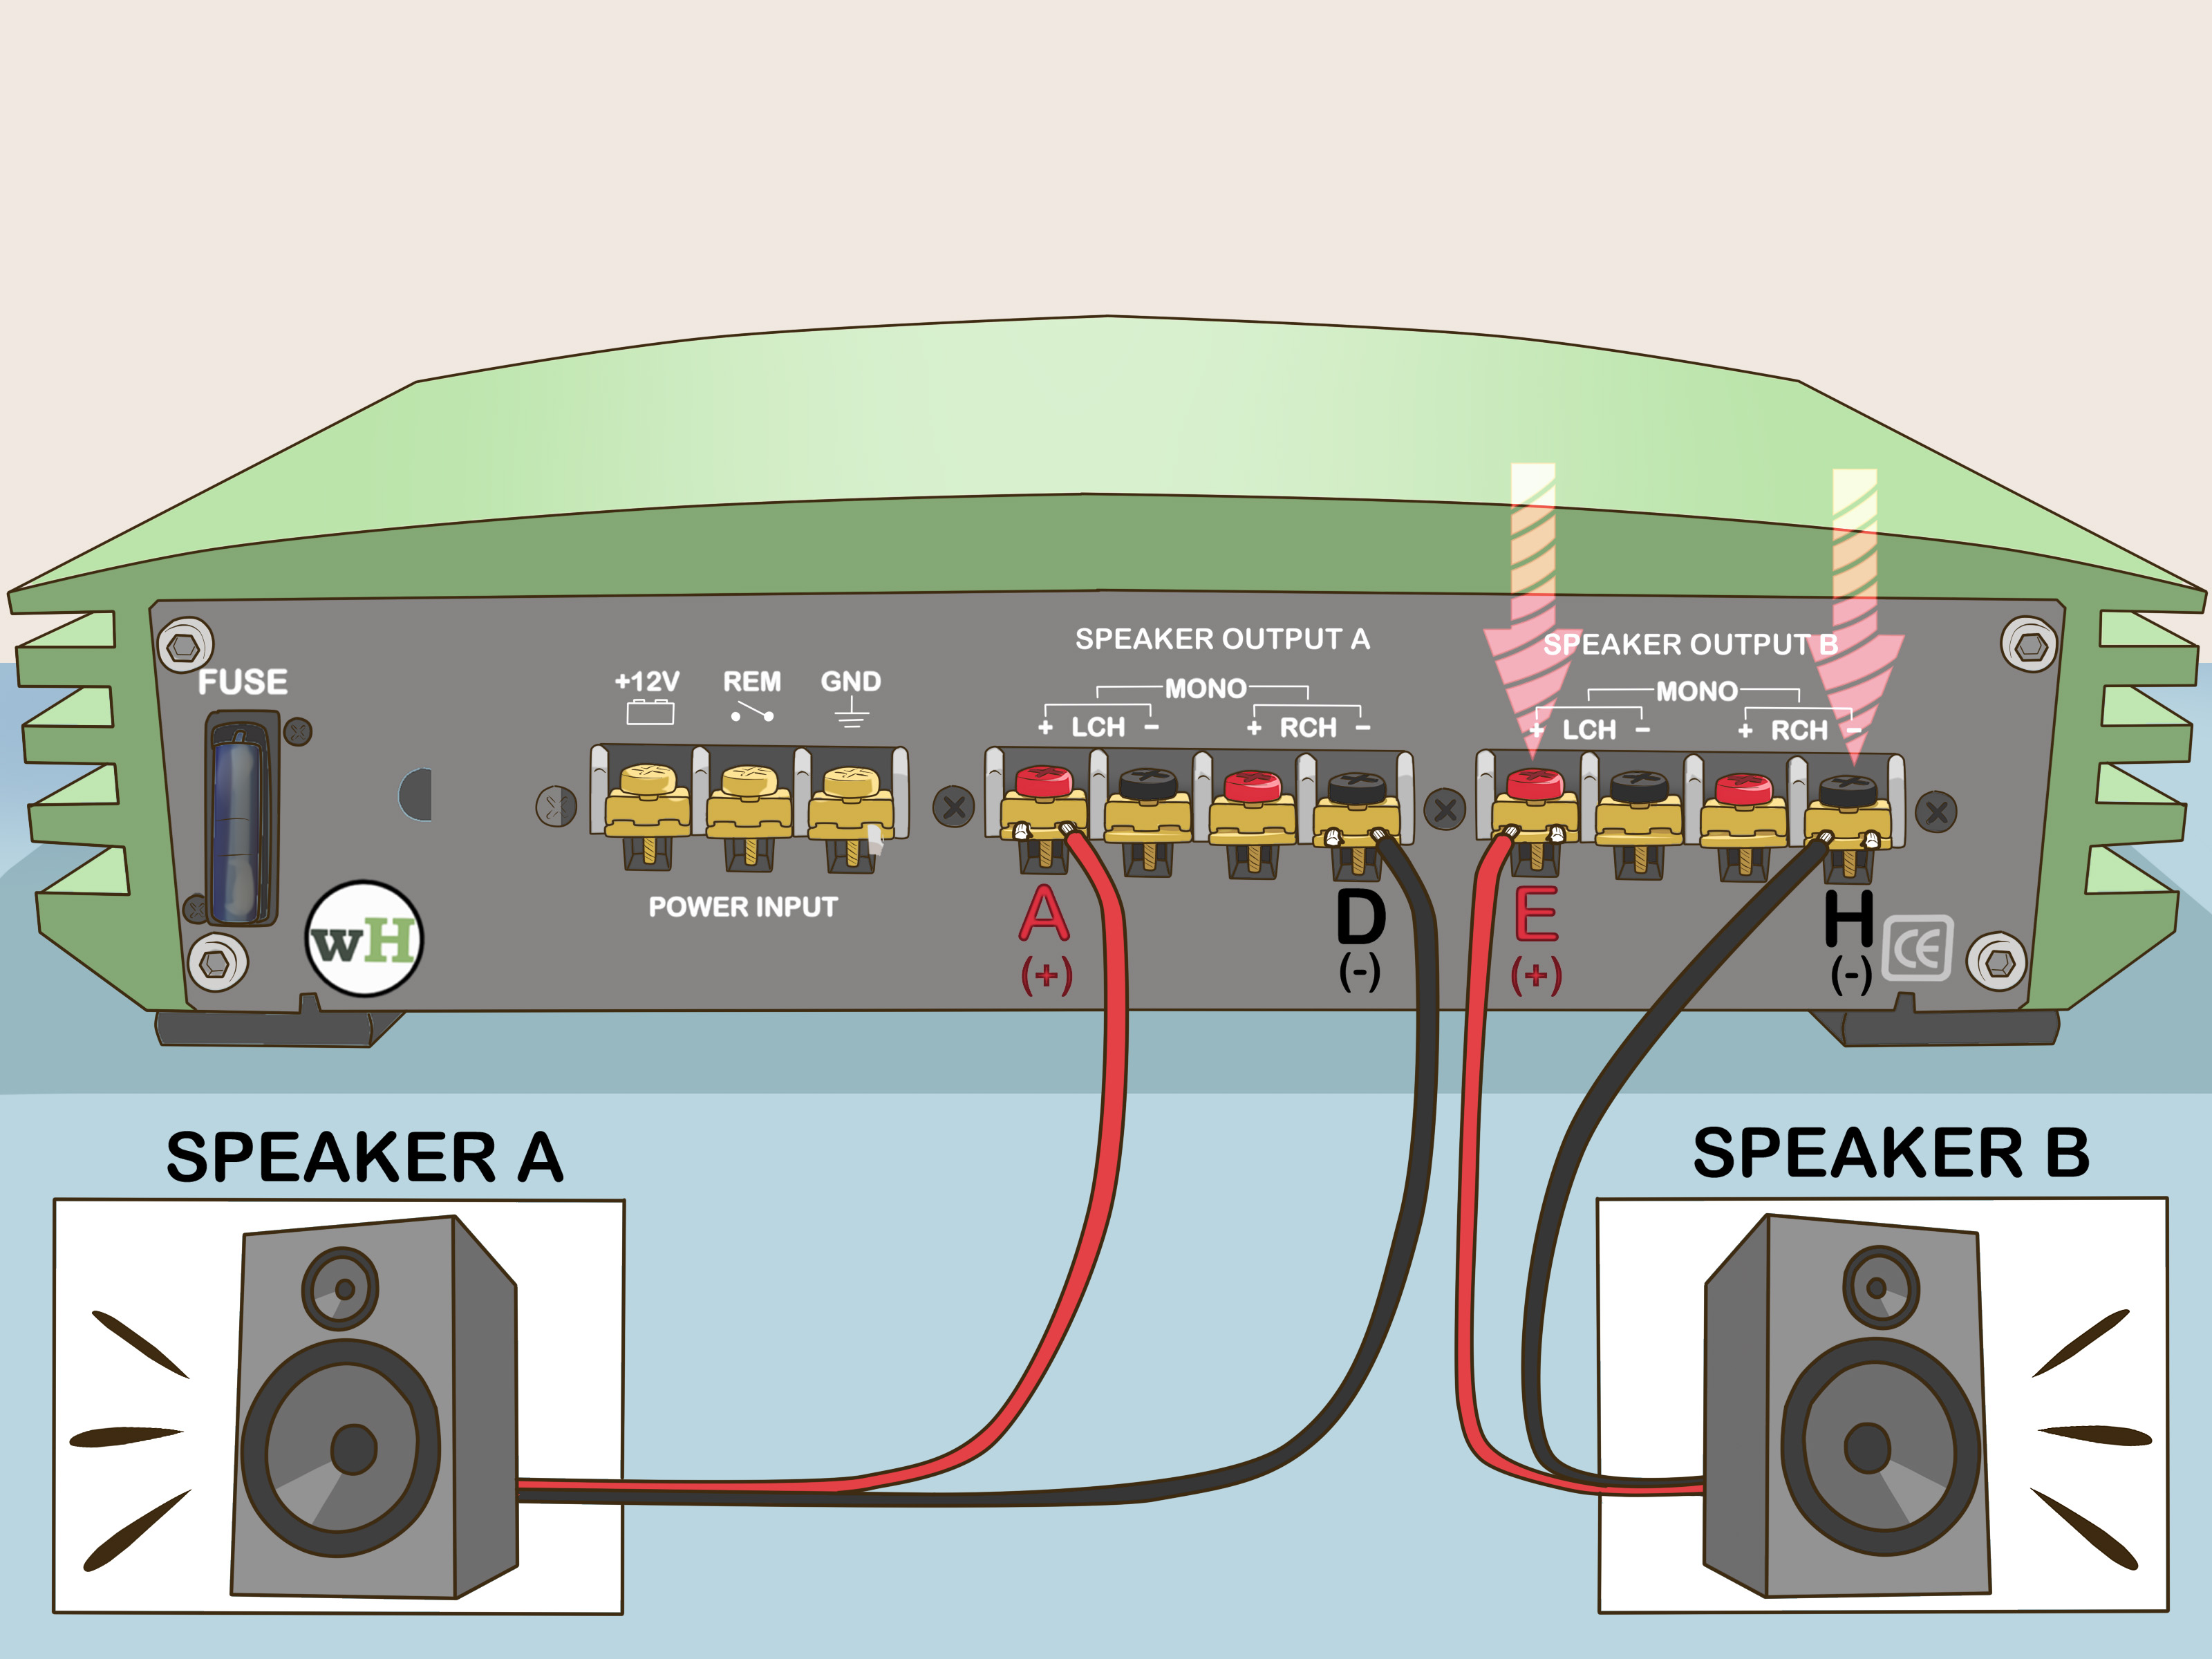 3 Channel Video Switcher Wiring Diagram Come Collegare A Ponte Un Amplificatore 7 Passaggi